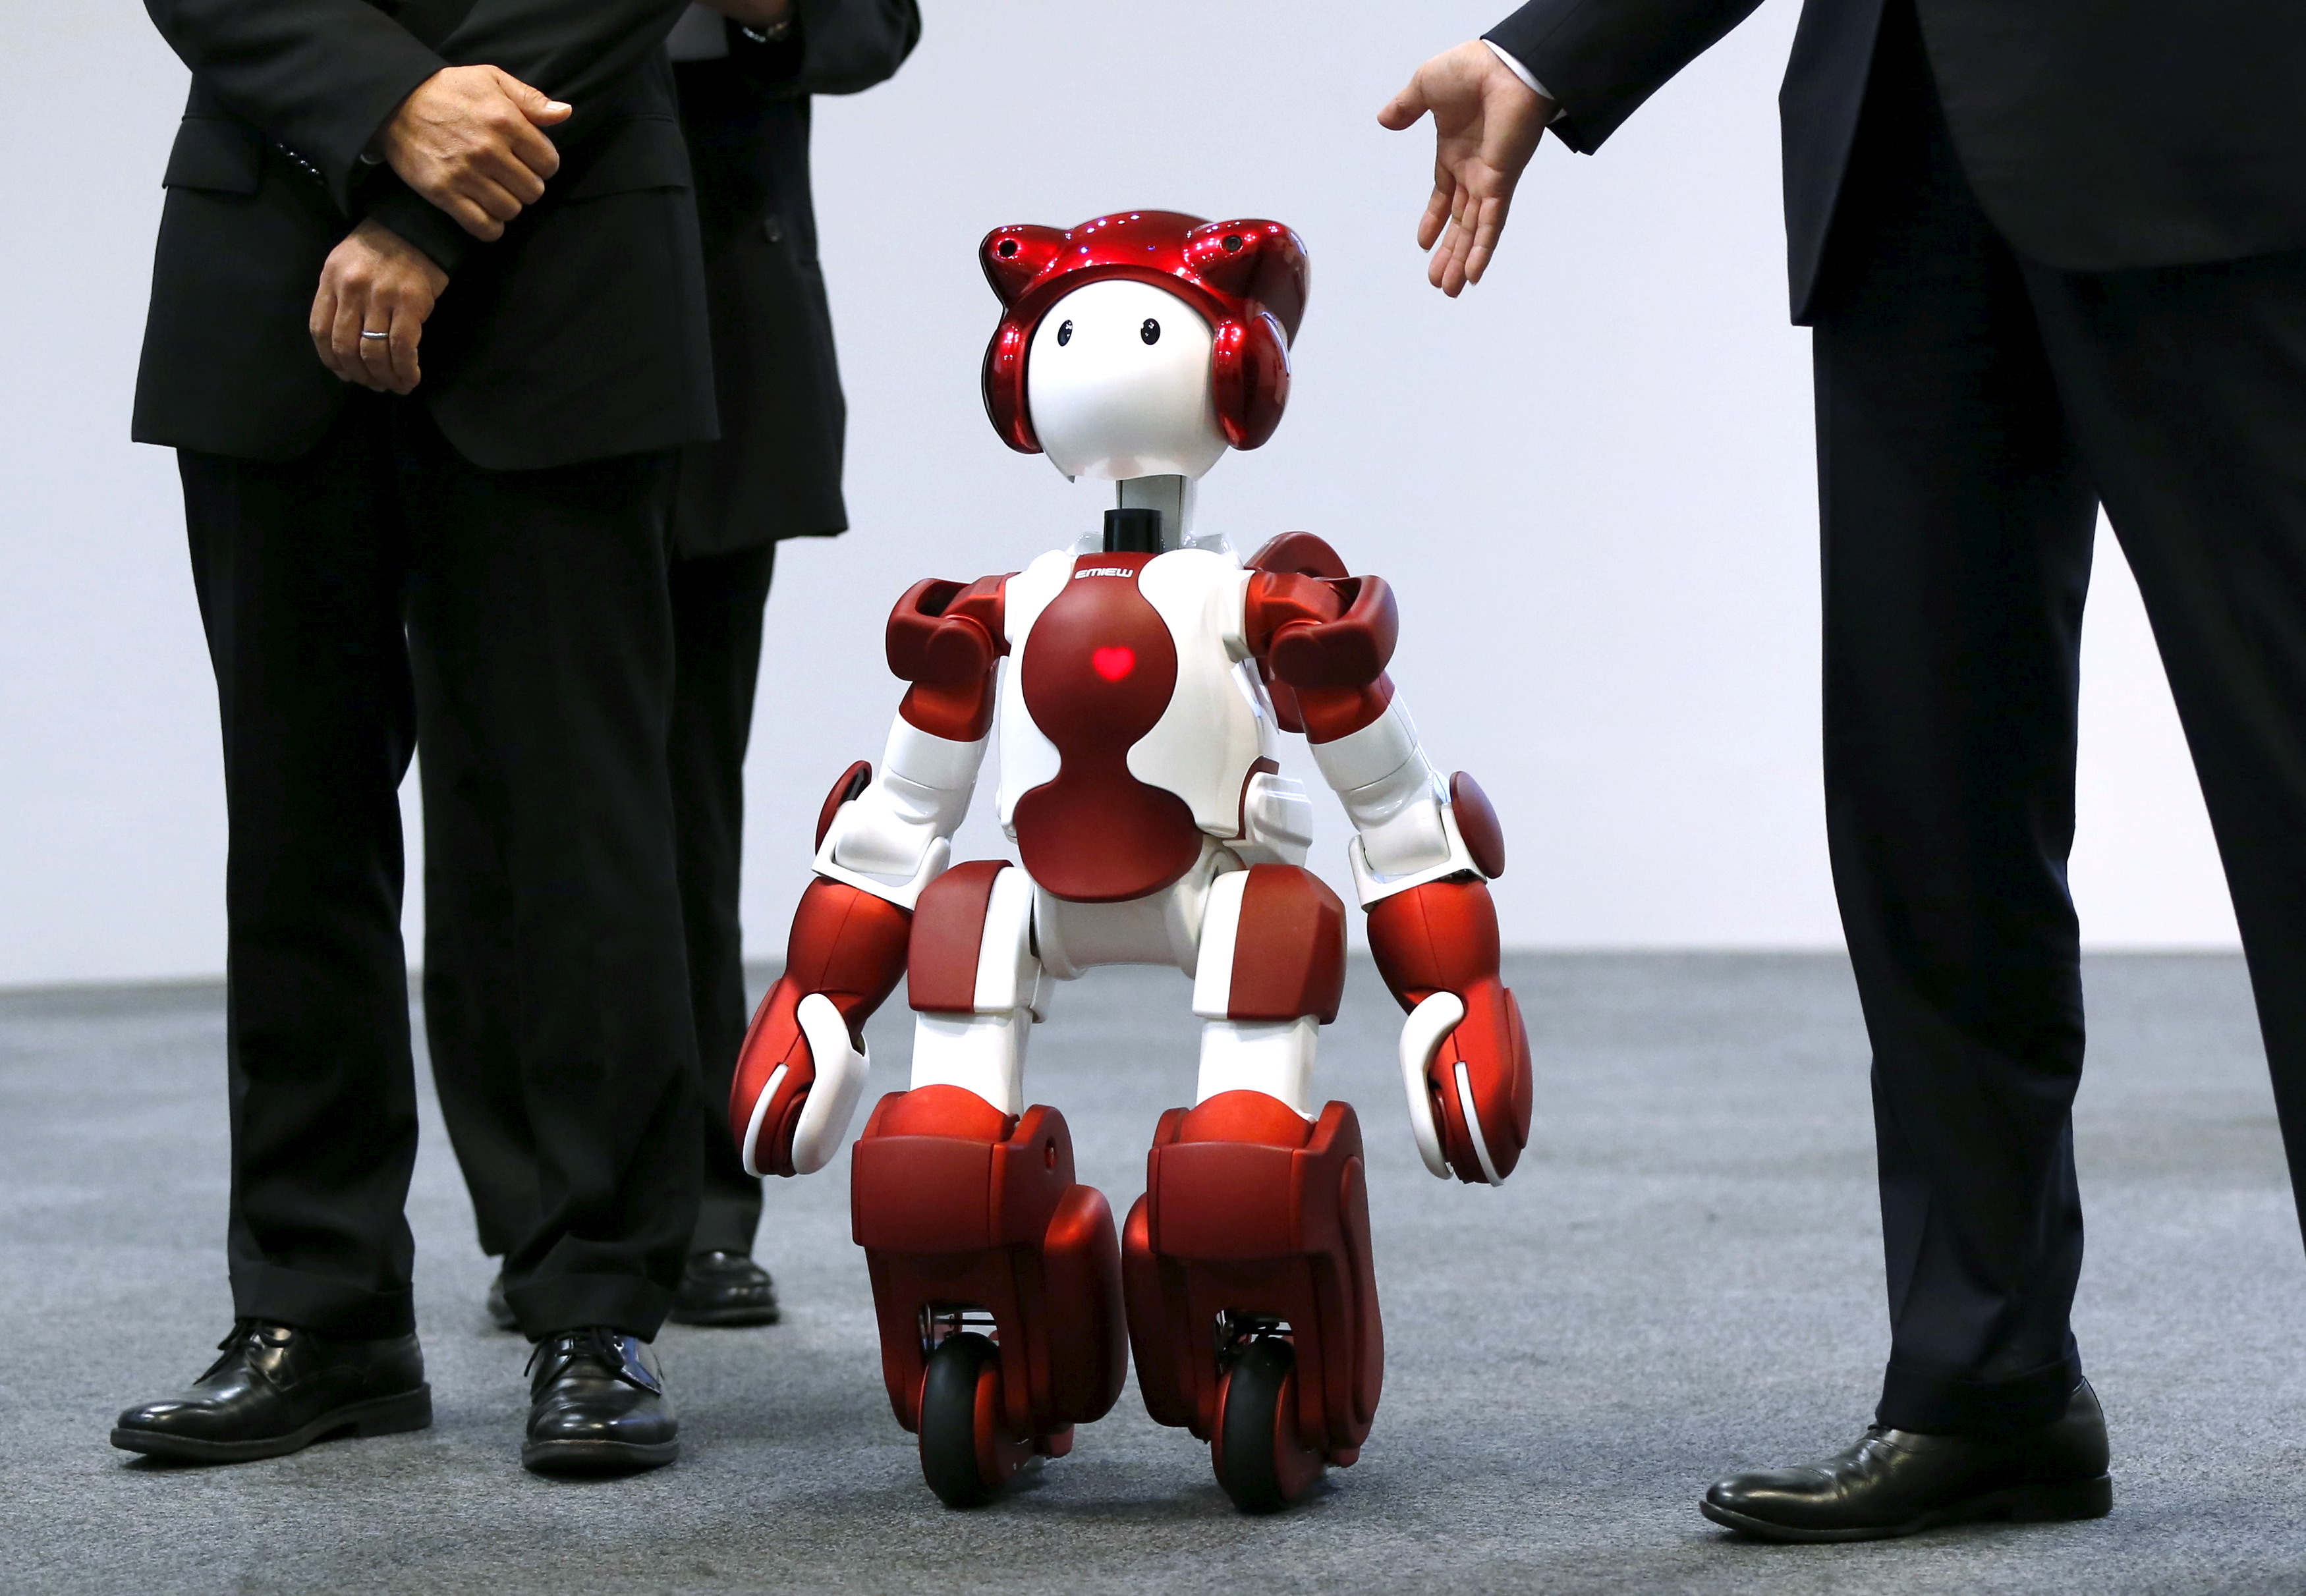 Hitachi Ltd. unveils humanoid customer service and guidance robot 'EMIEW3' in Tokyo